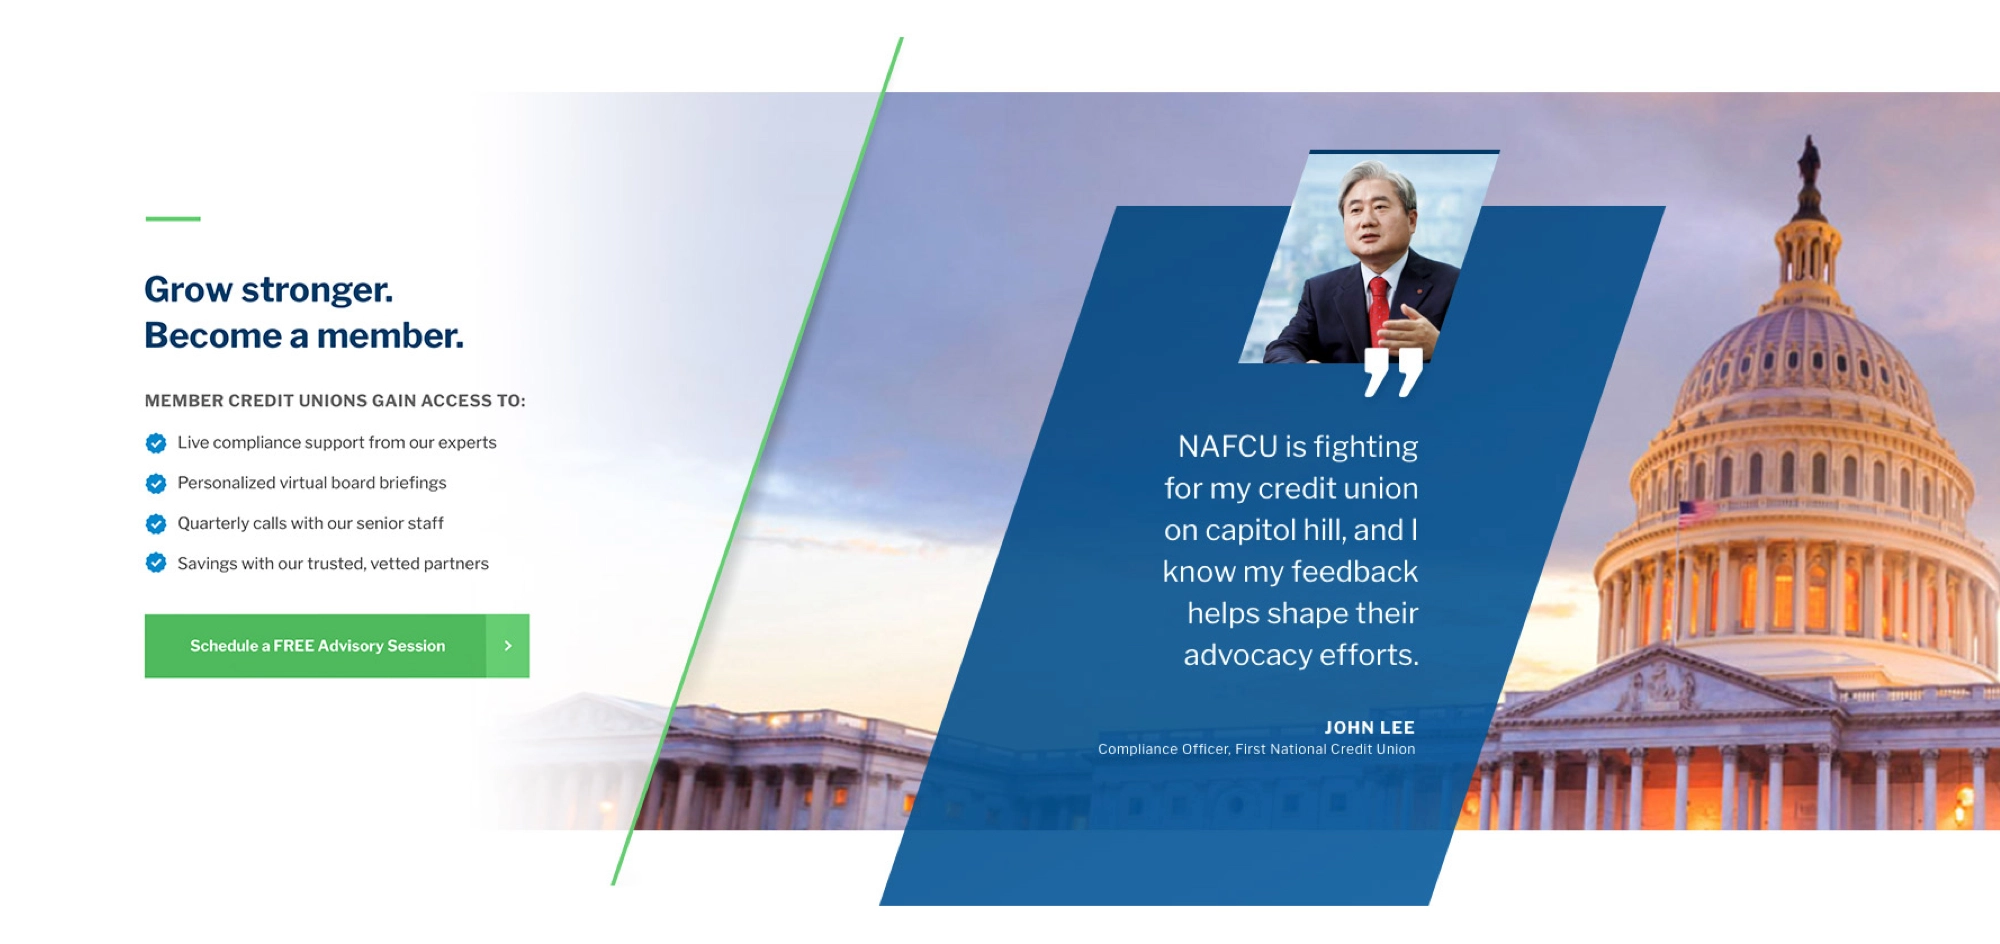 NAFCU personalization and news highlights